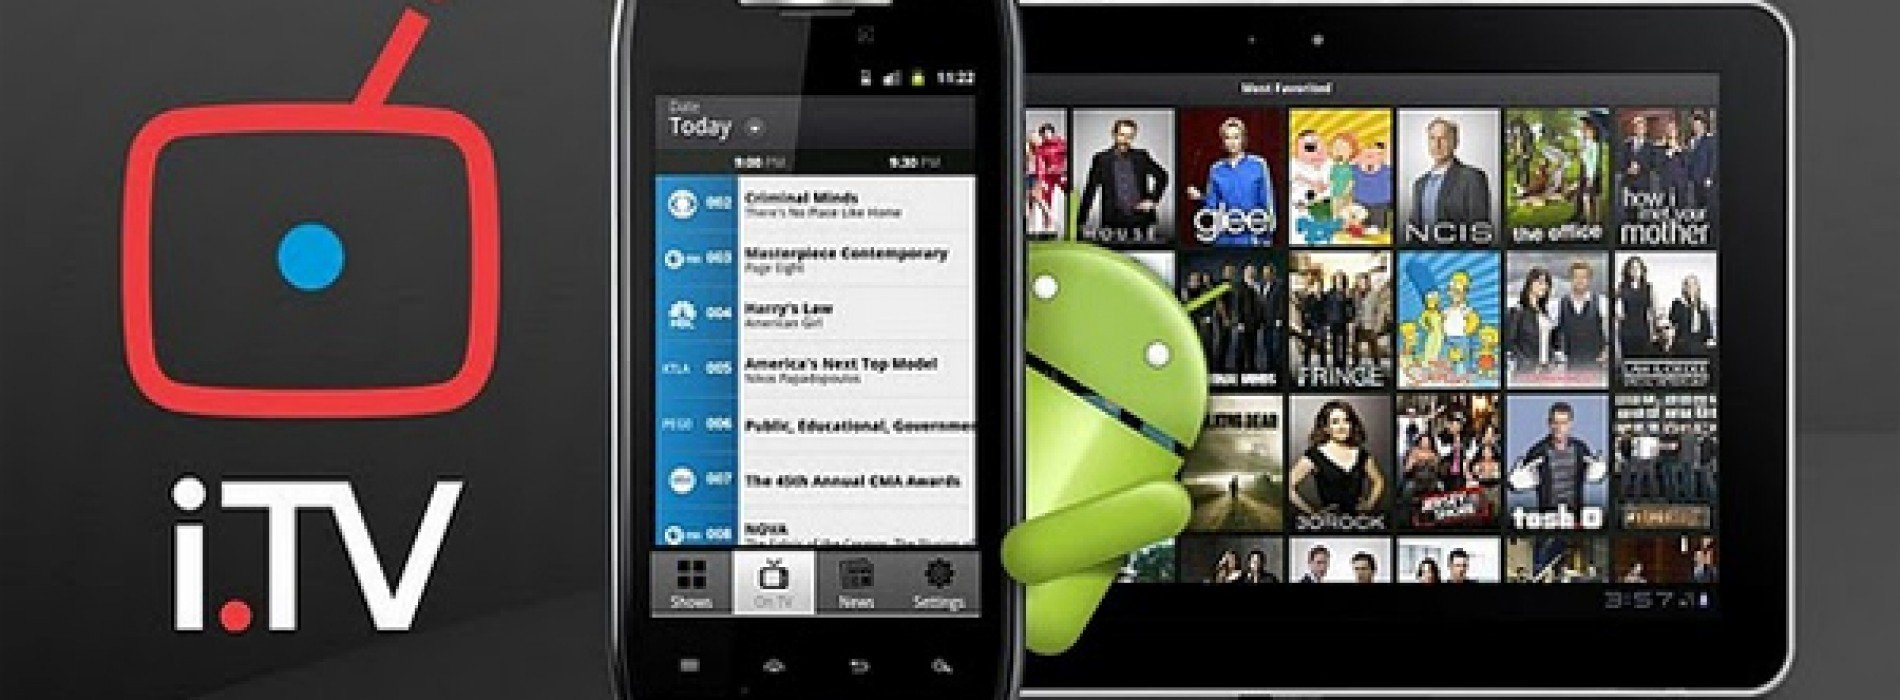 Popular TV guide app i.TV guides its way to the Android Market